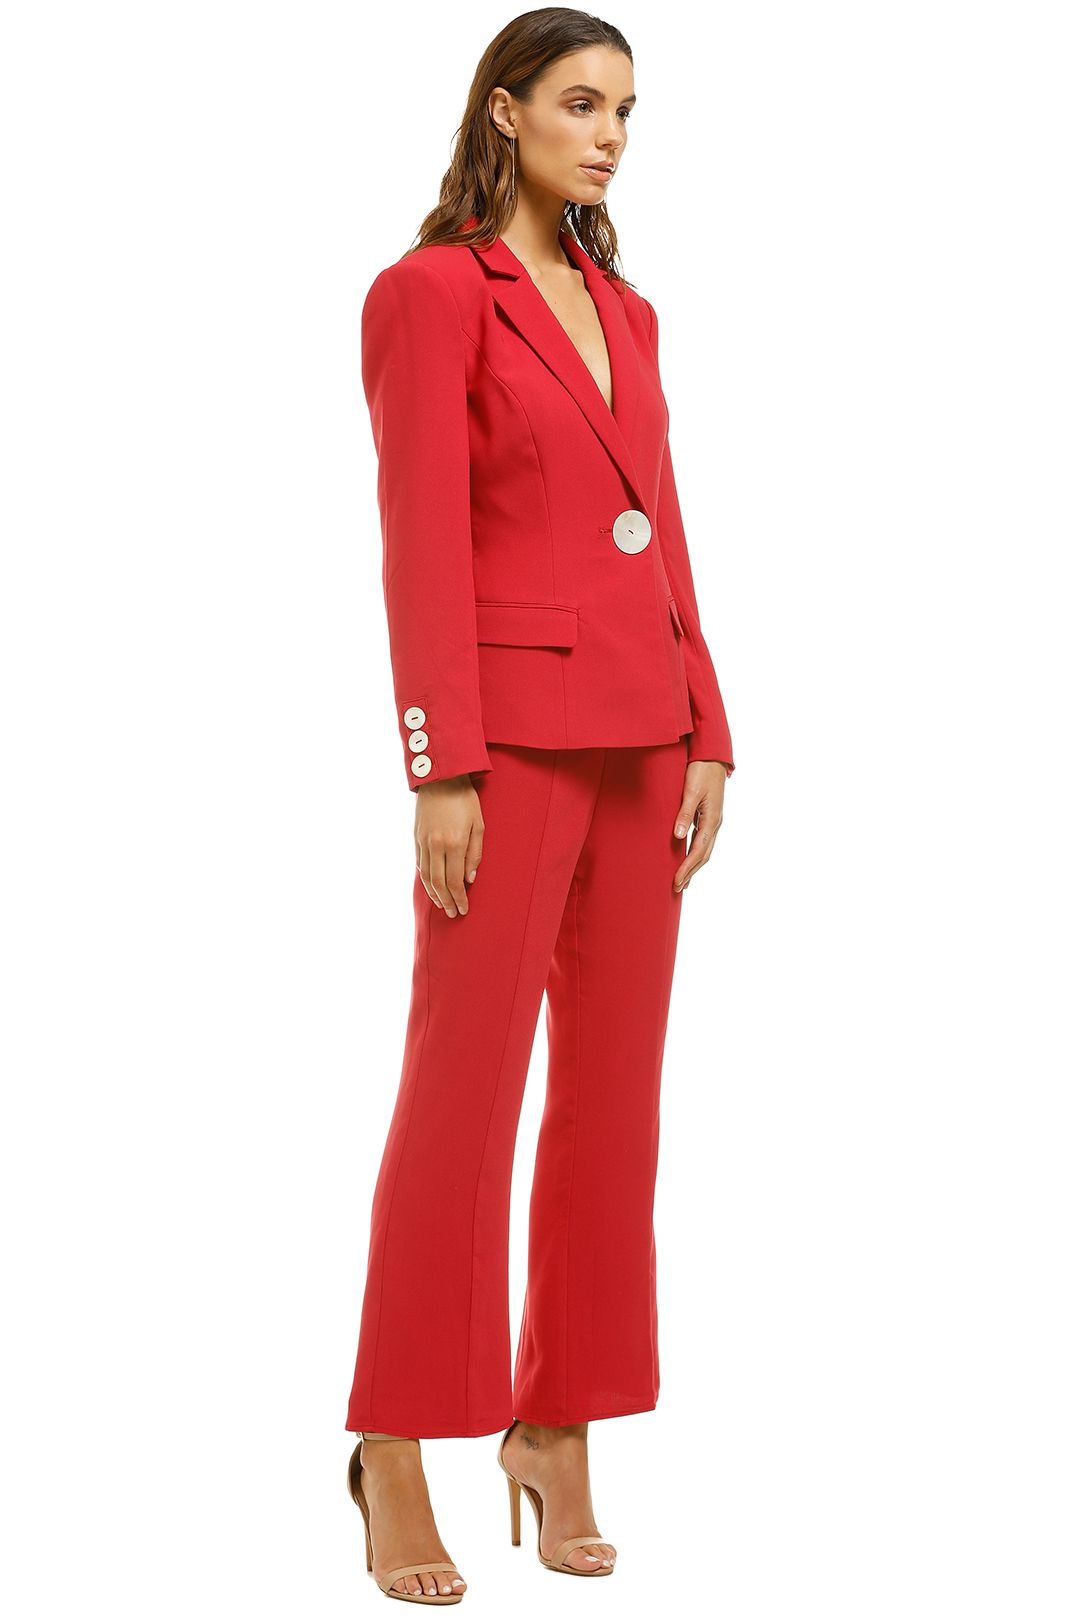 Keepsake-The-Label-Estate-Blazer-and-Pant-Set-Scarlet-Side